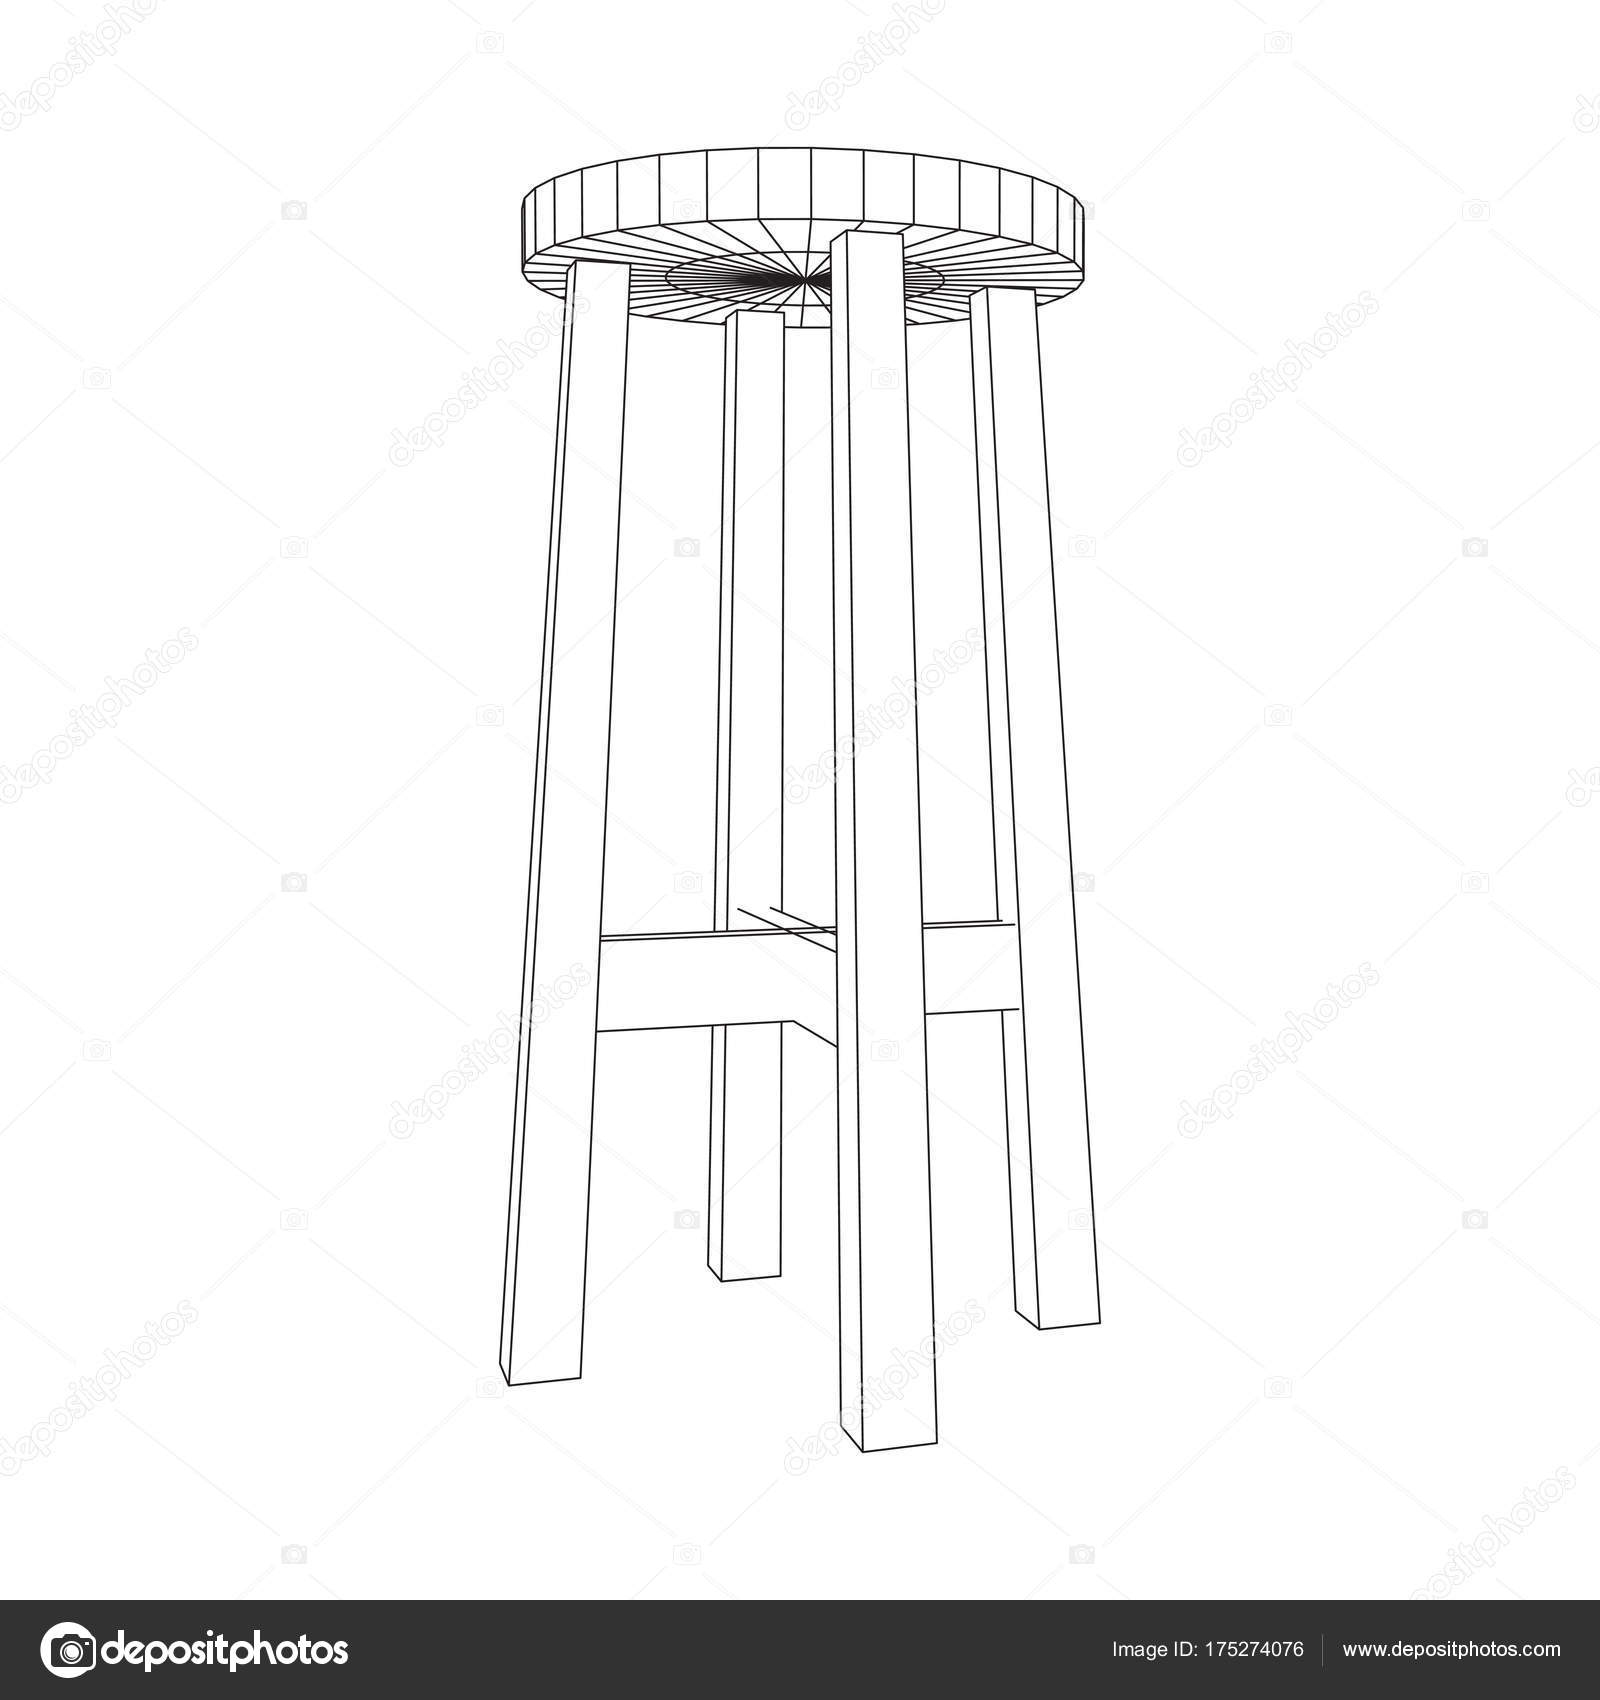 Bar stool furniture wireframe blueprint stock vector newb1 bar stool furniture wireframe blueprint stock vector malvernweather Choice Image